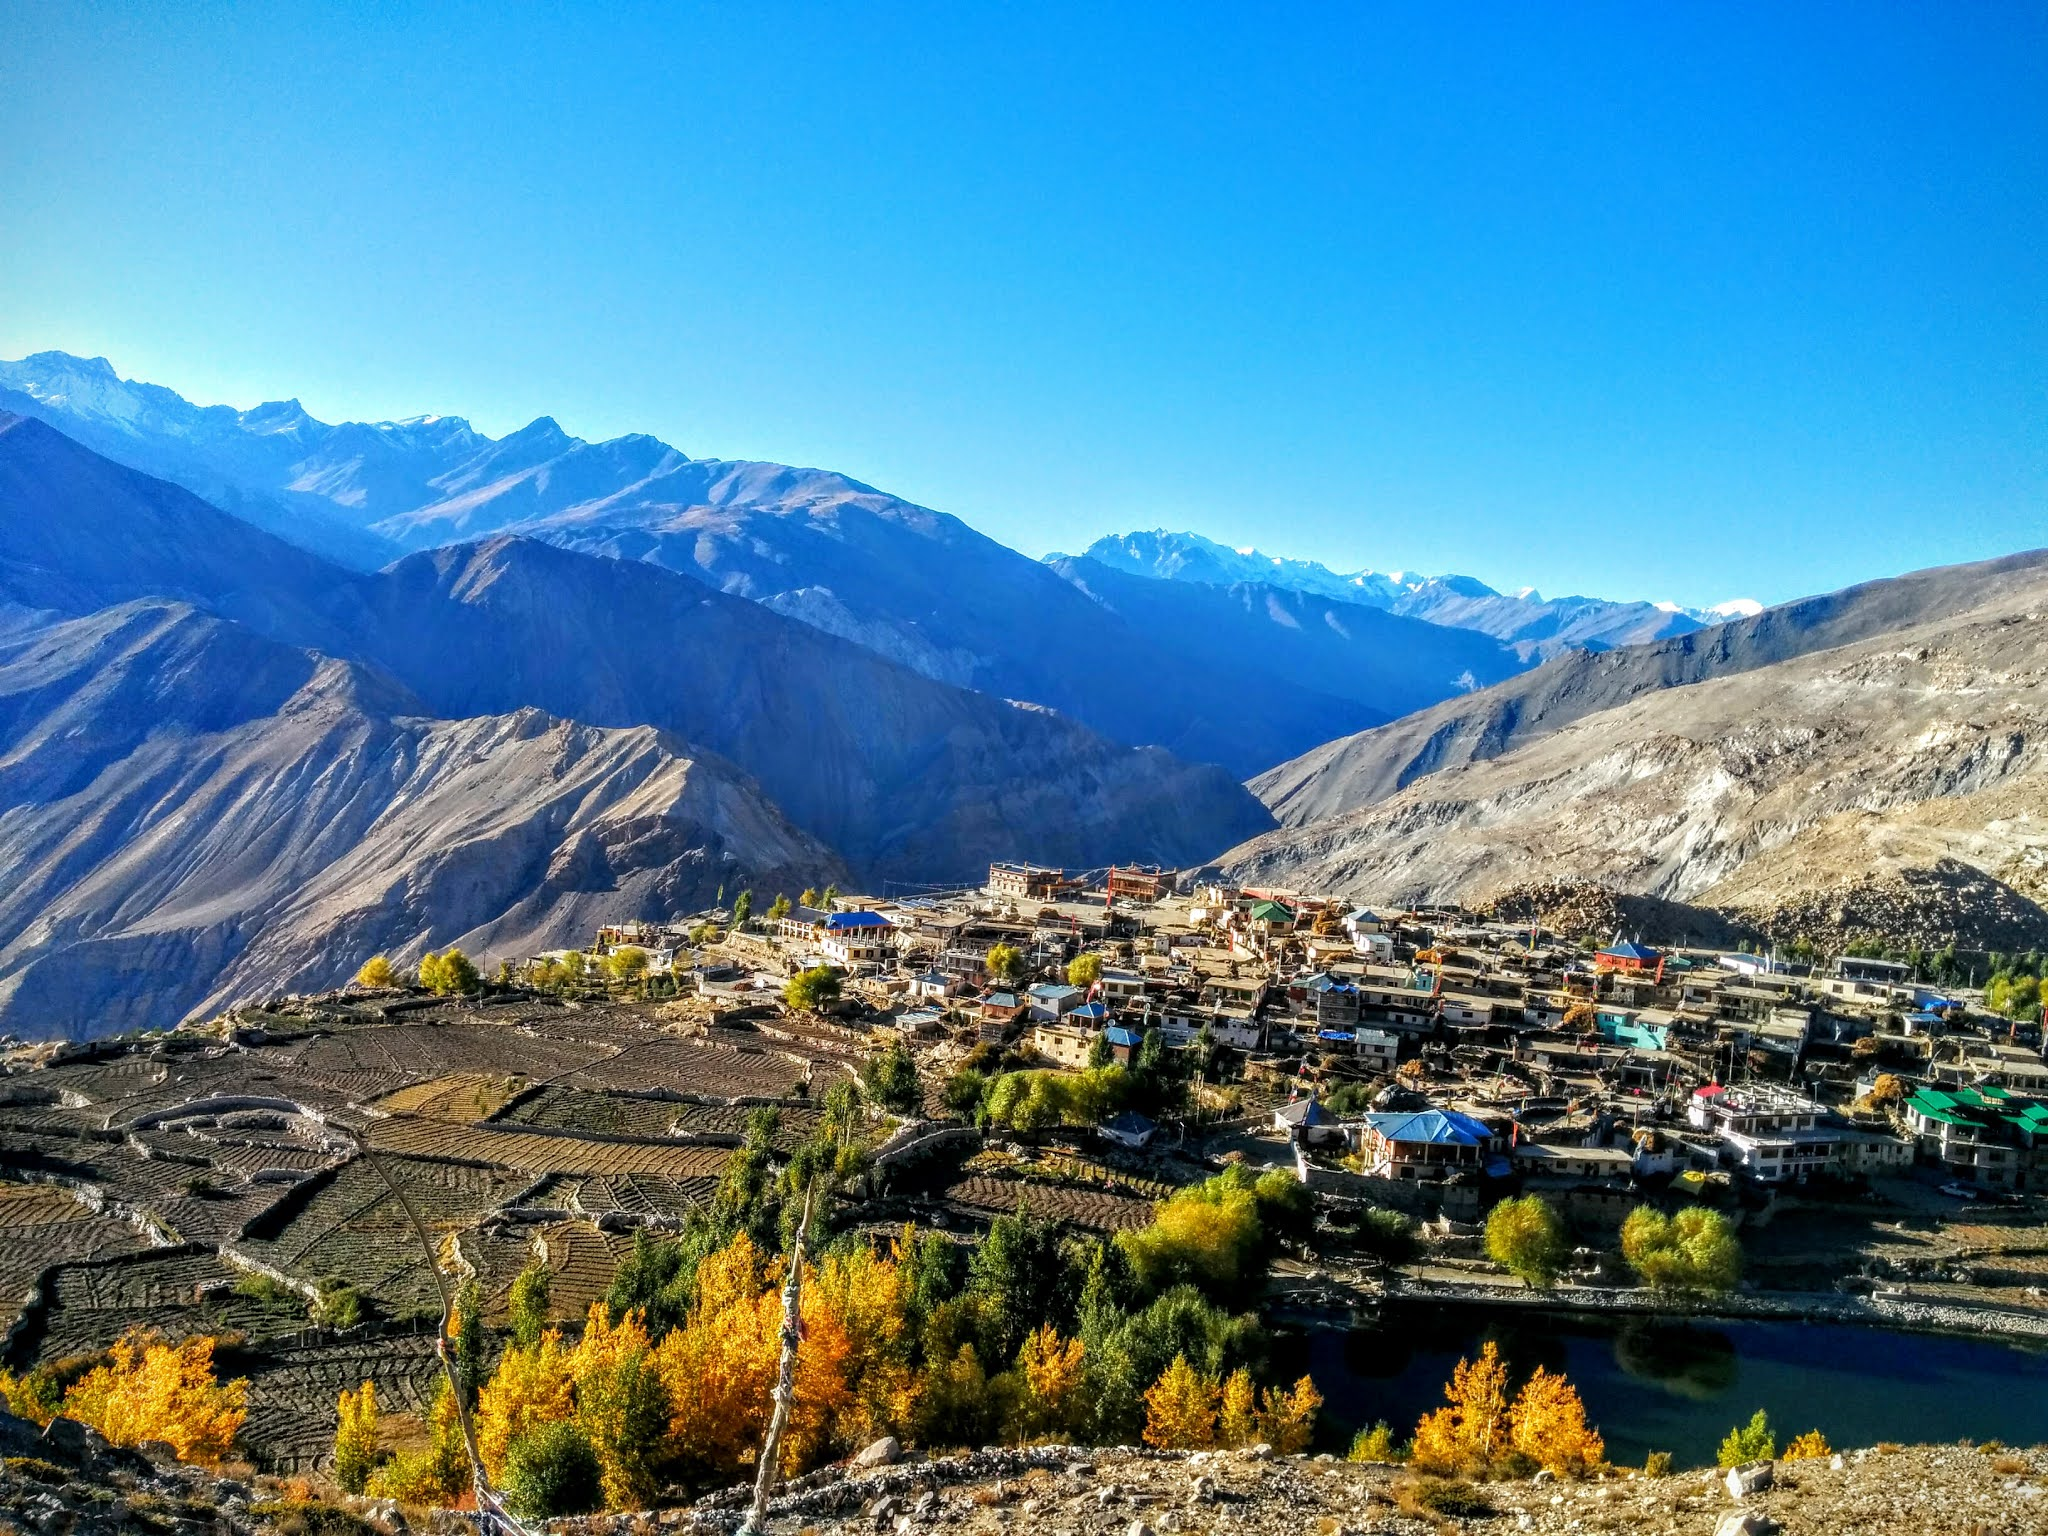 The gorgeous Nako village, Spiti valley, Himachal Pradesh